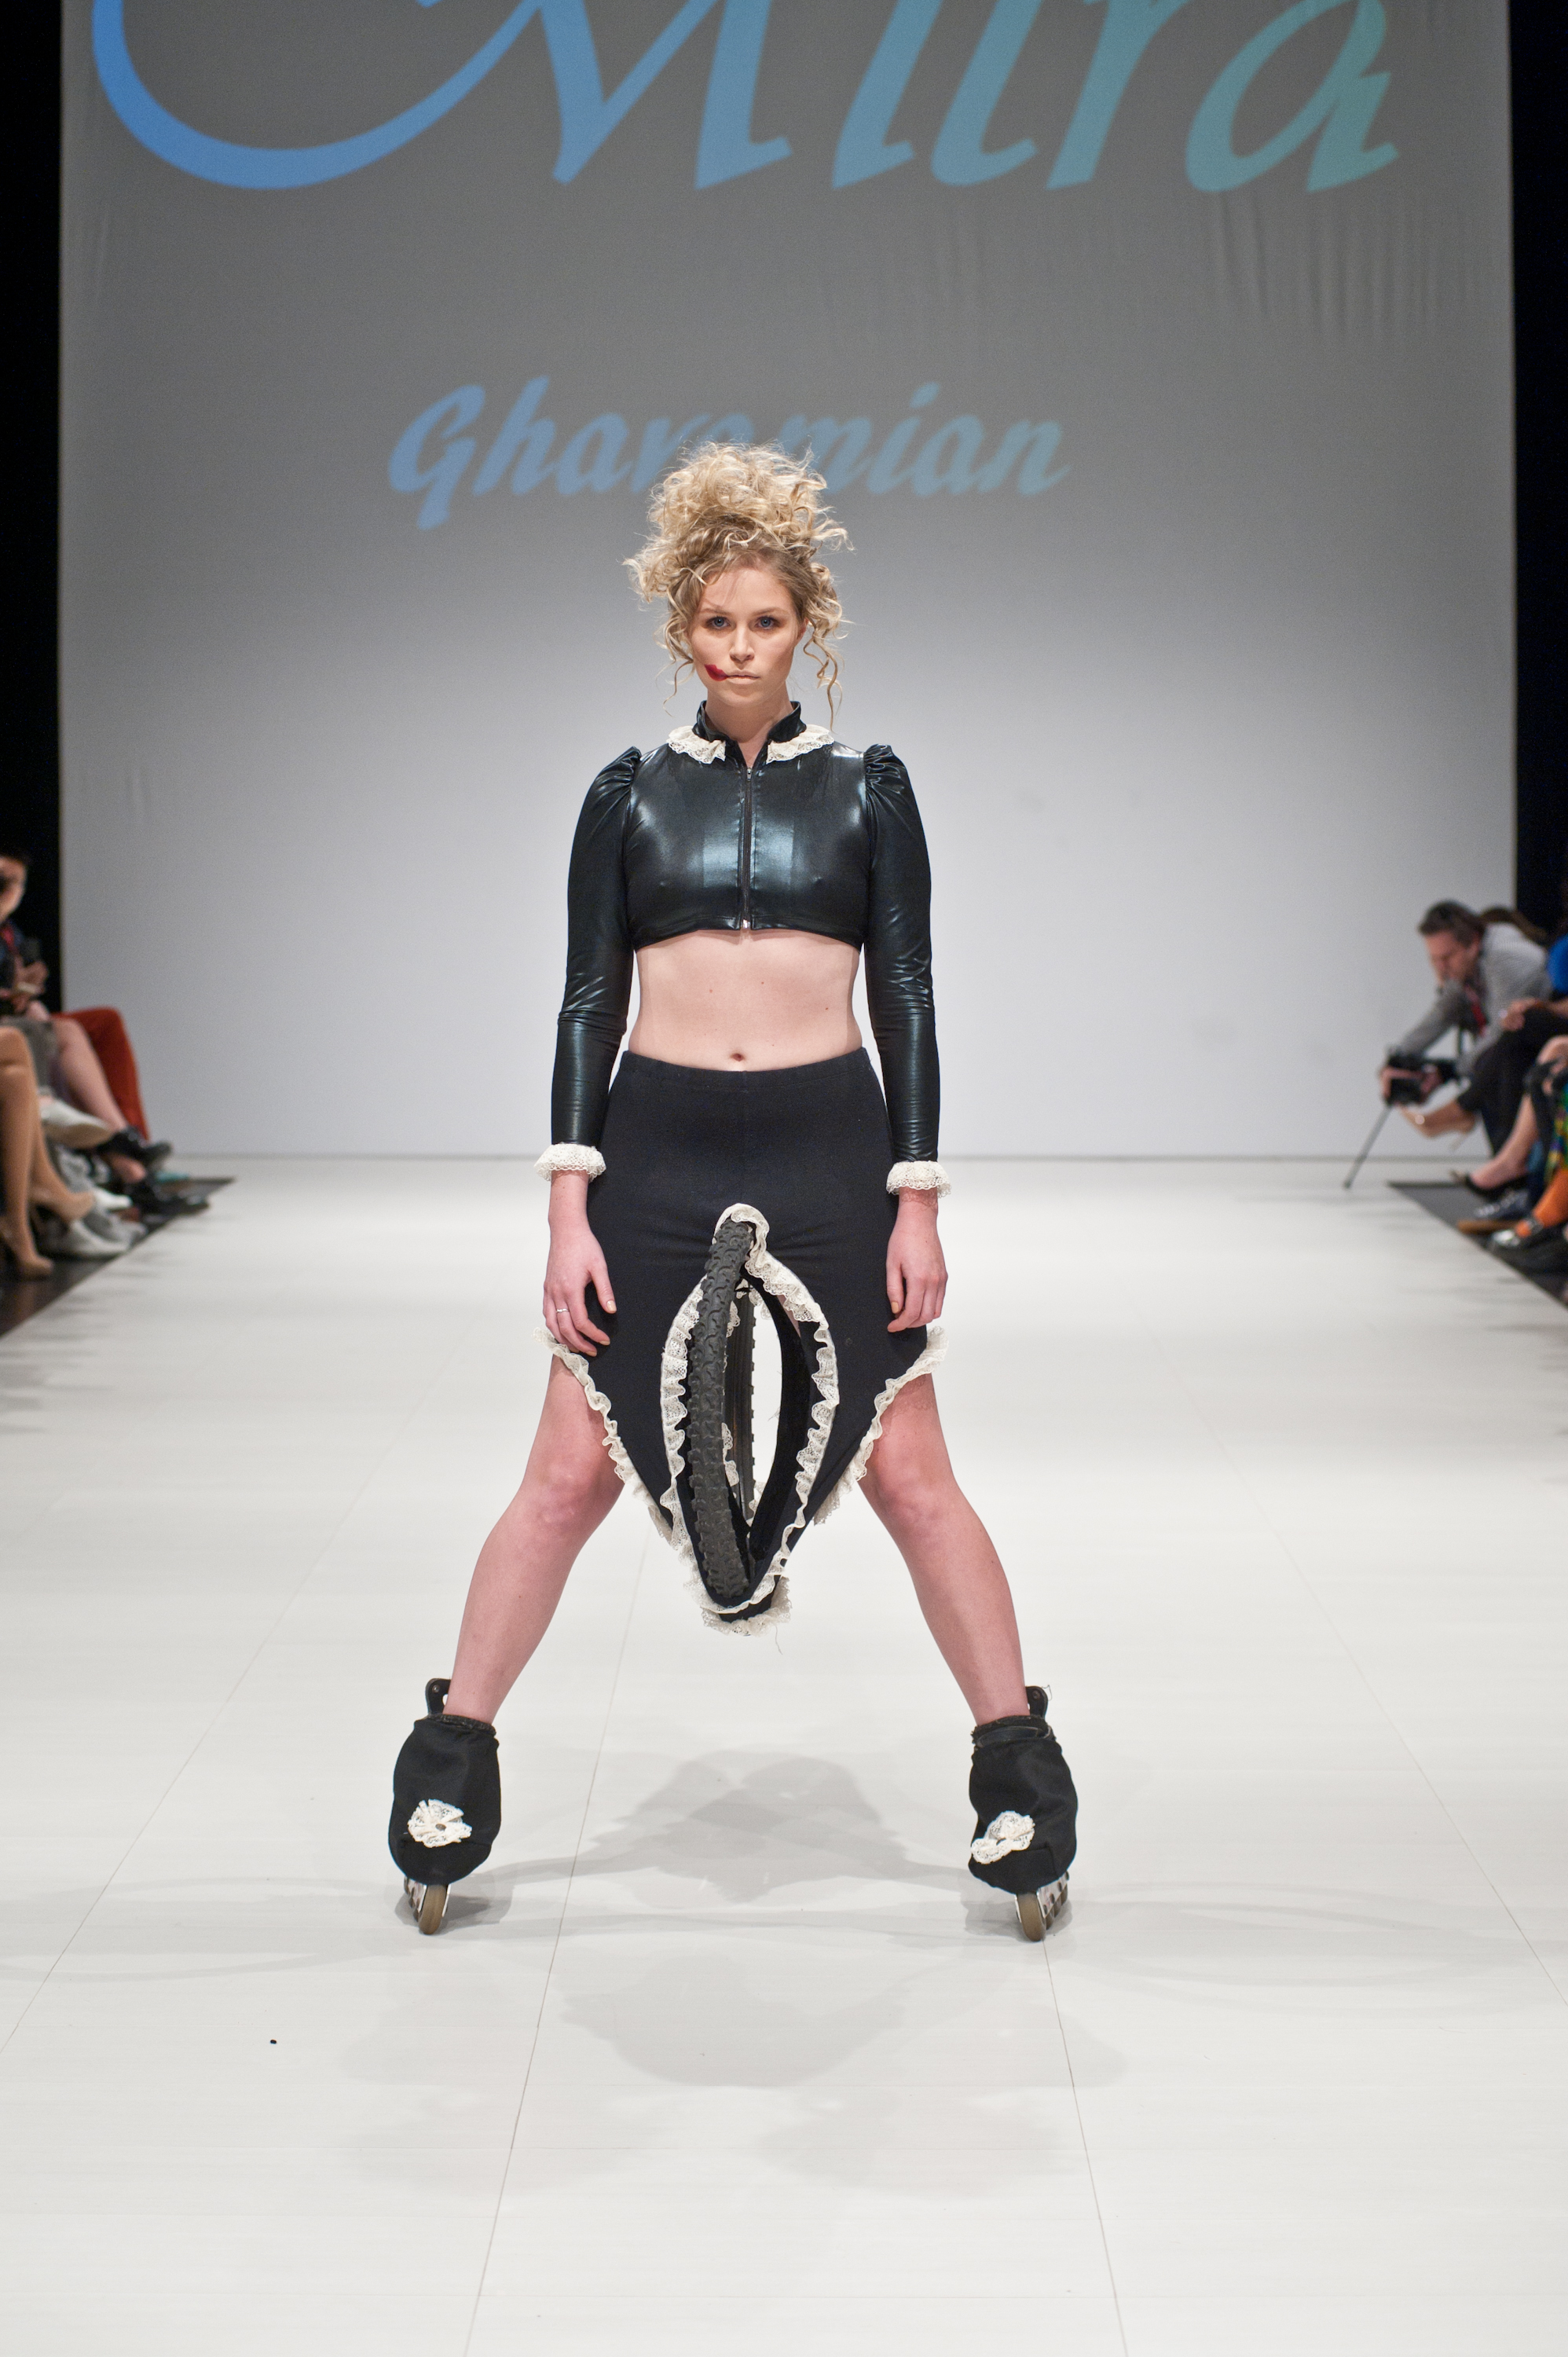 fashion-art-toronto-MitraGhavamian